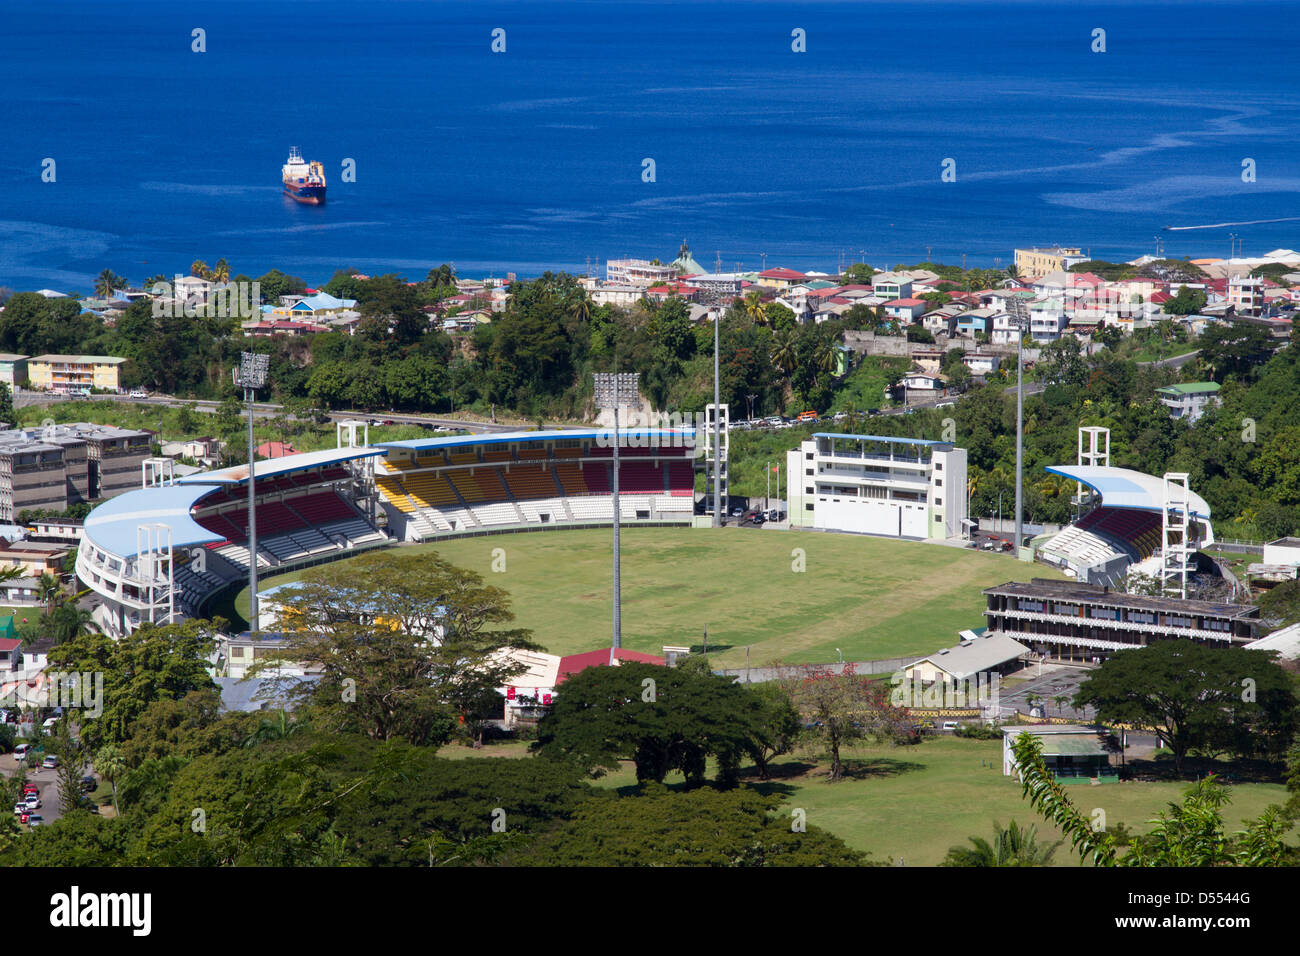 Dominica Roseau Windsor park sports stadium - Stock Image